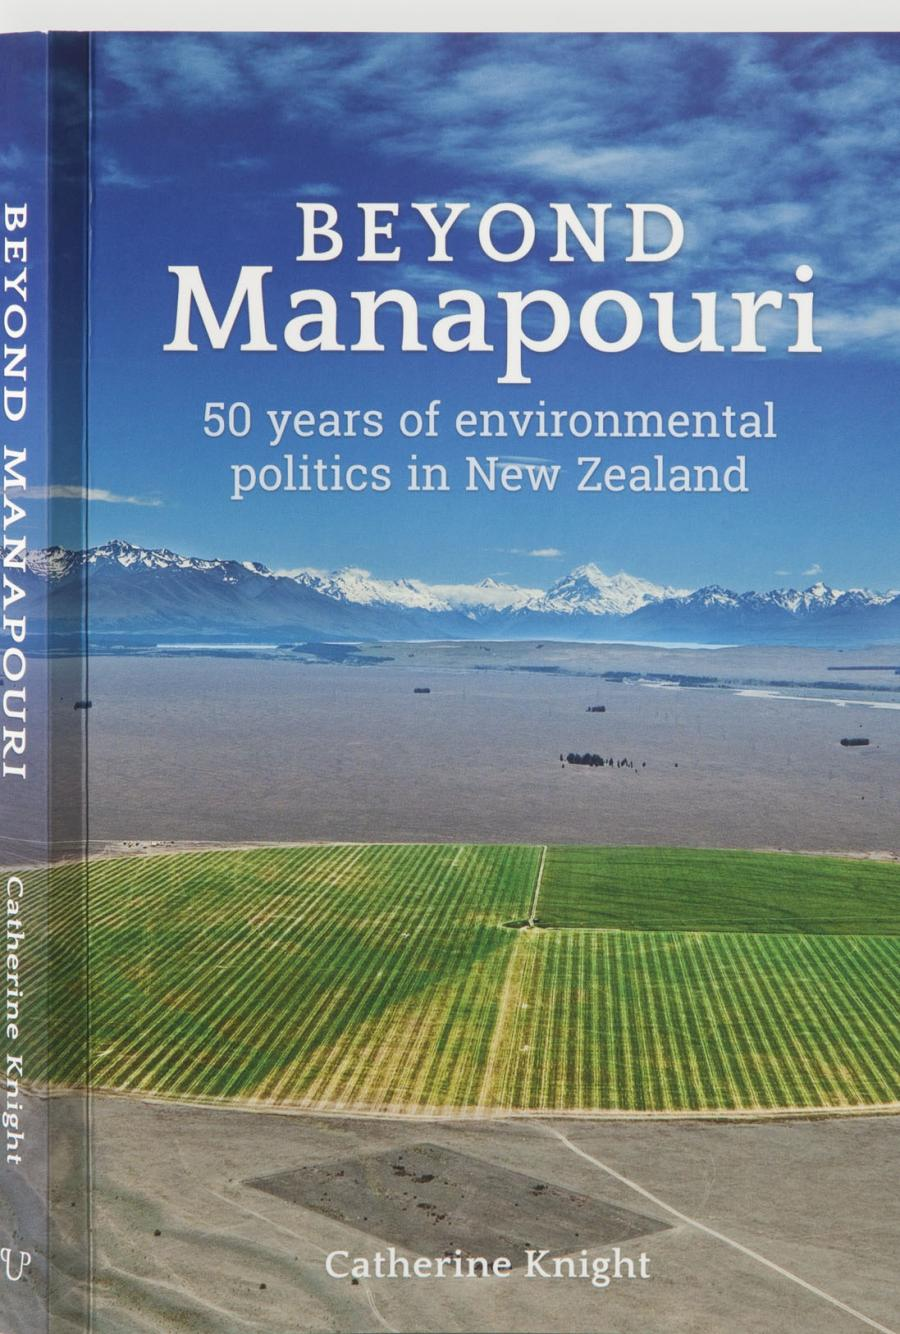 Tackling reasons for New Zealand's failure to address our biggest environmental issues